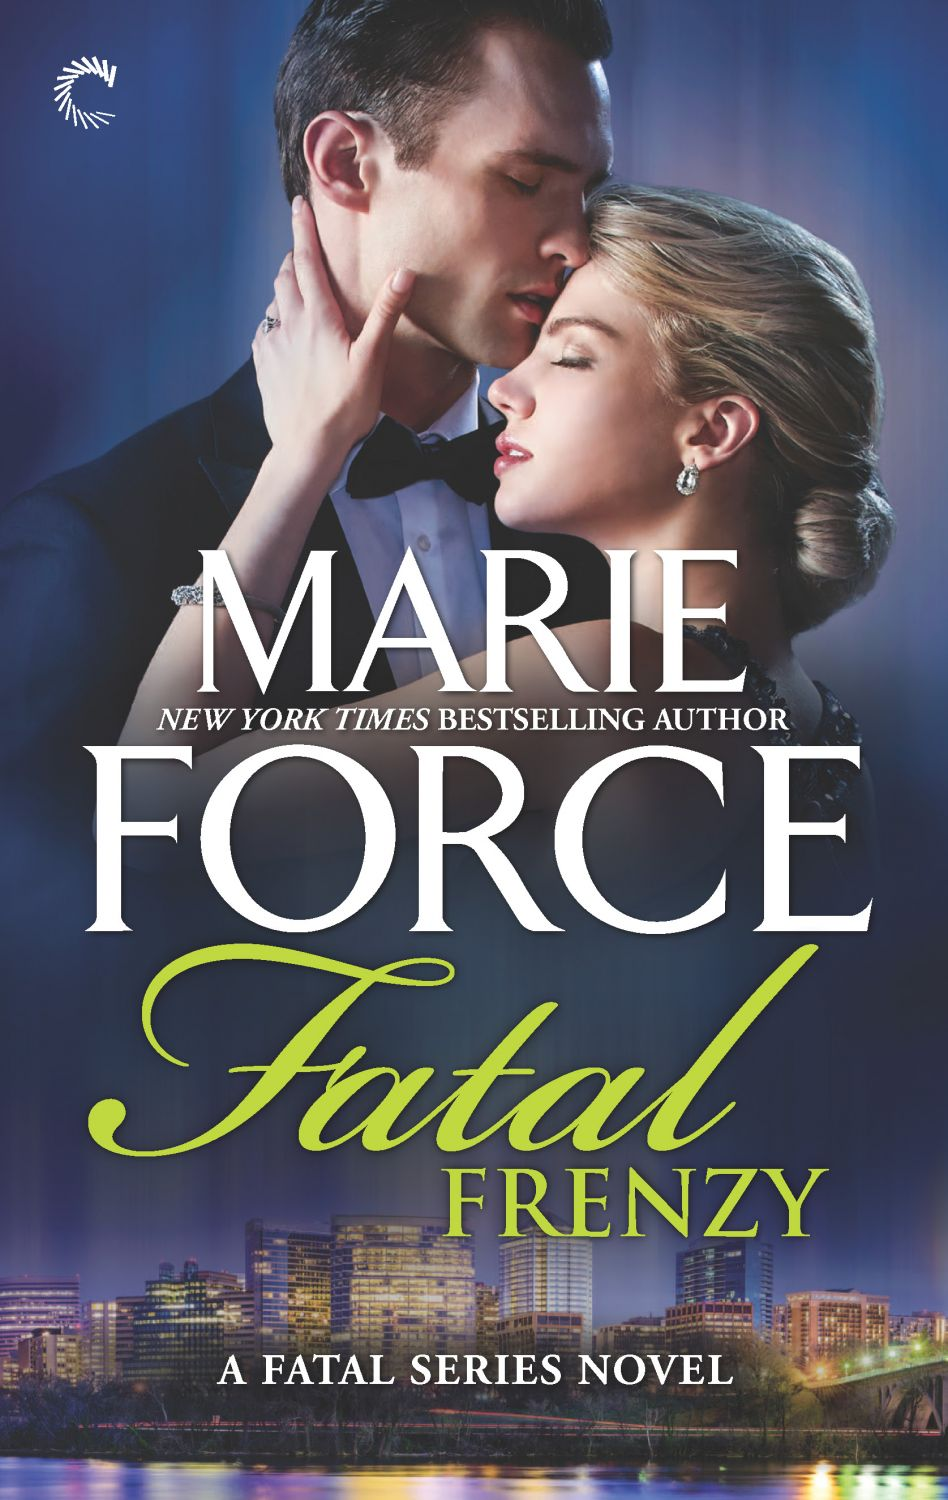 About fatal frenzy book 9